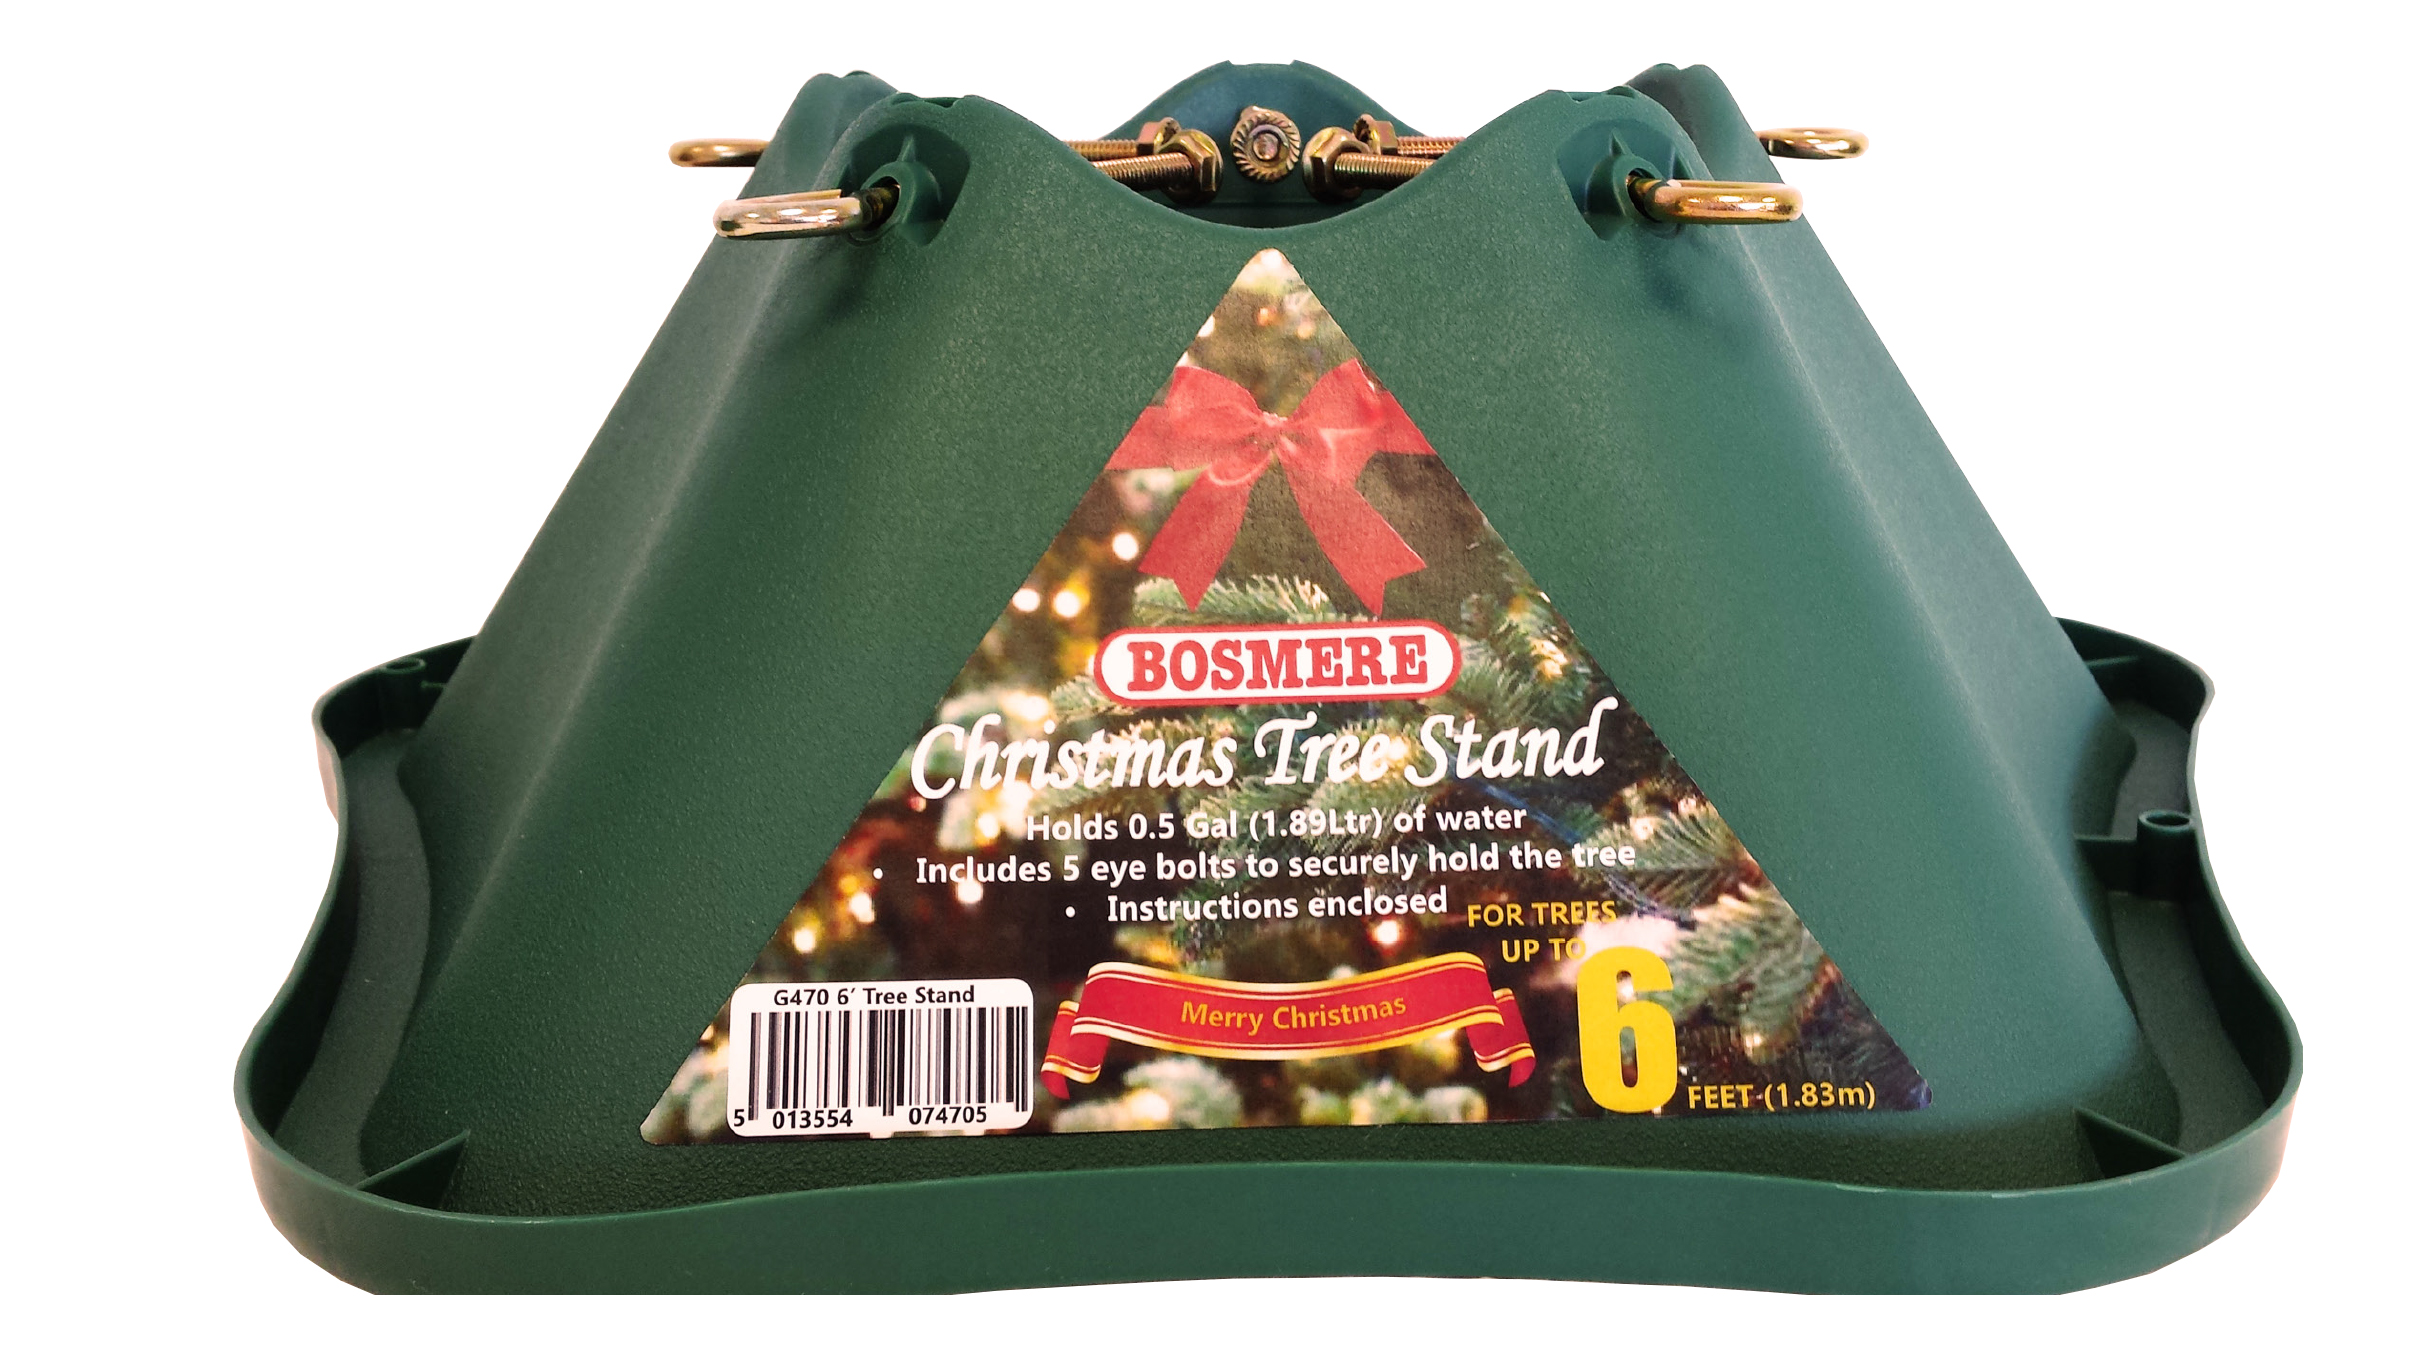 Bosmere Green Christmas Tree Stand   6ft